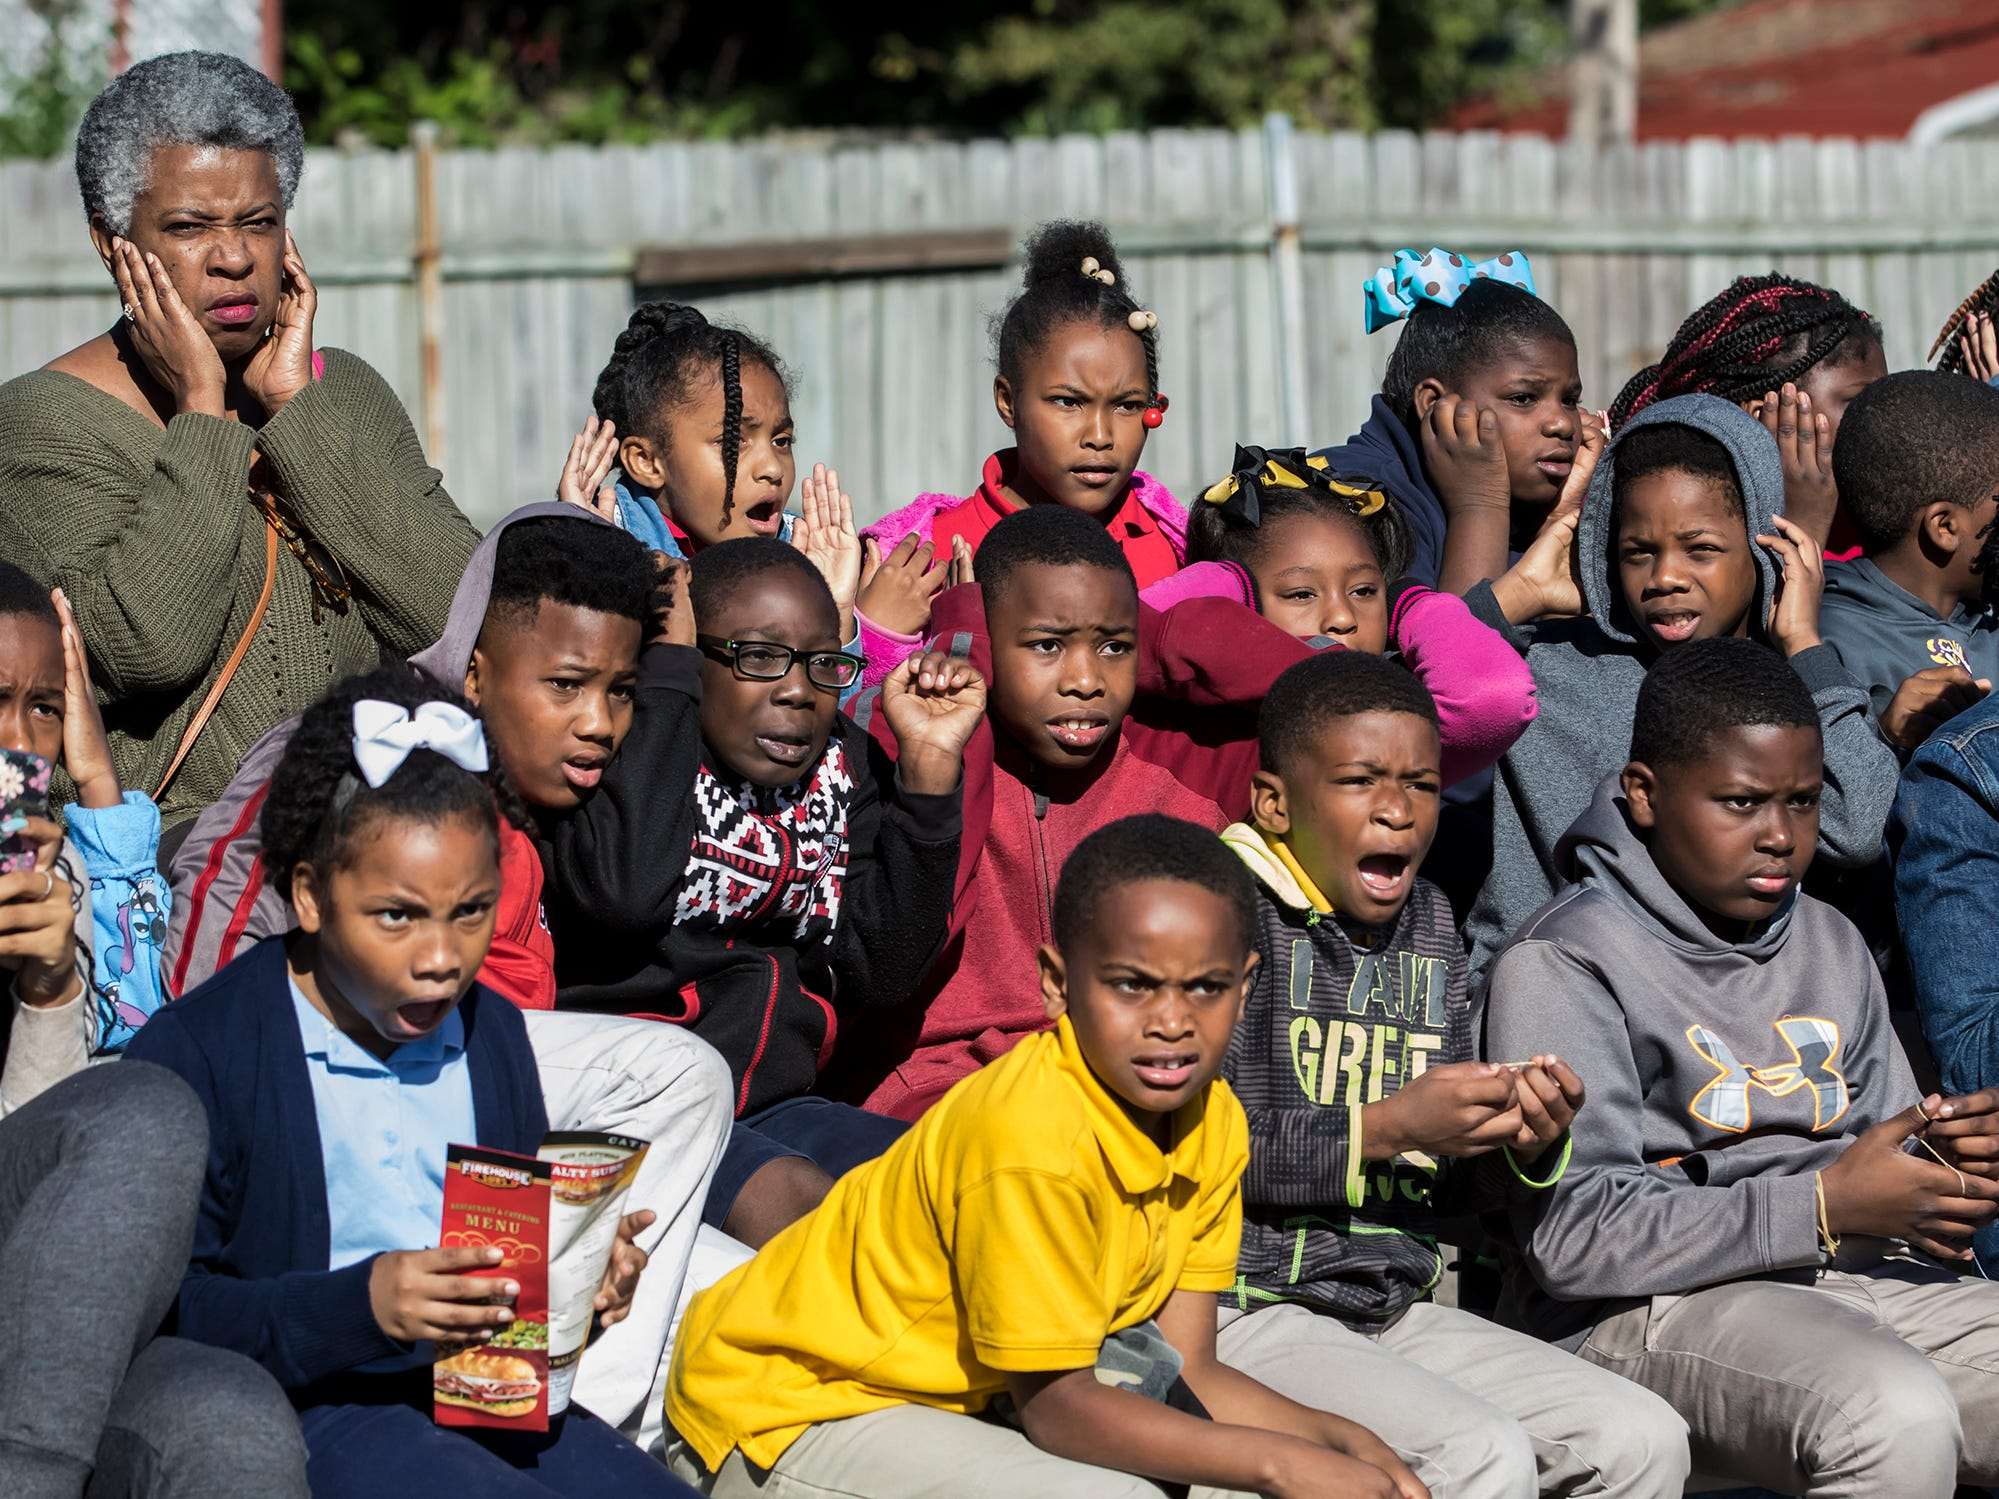 Children react to a car exploding during a fire prevention week demonstration held in Monroe, La. on Oct. 11.